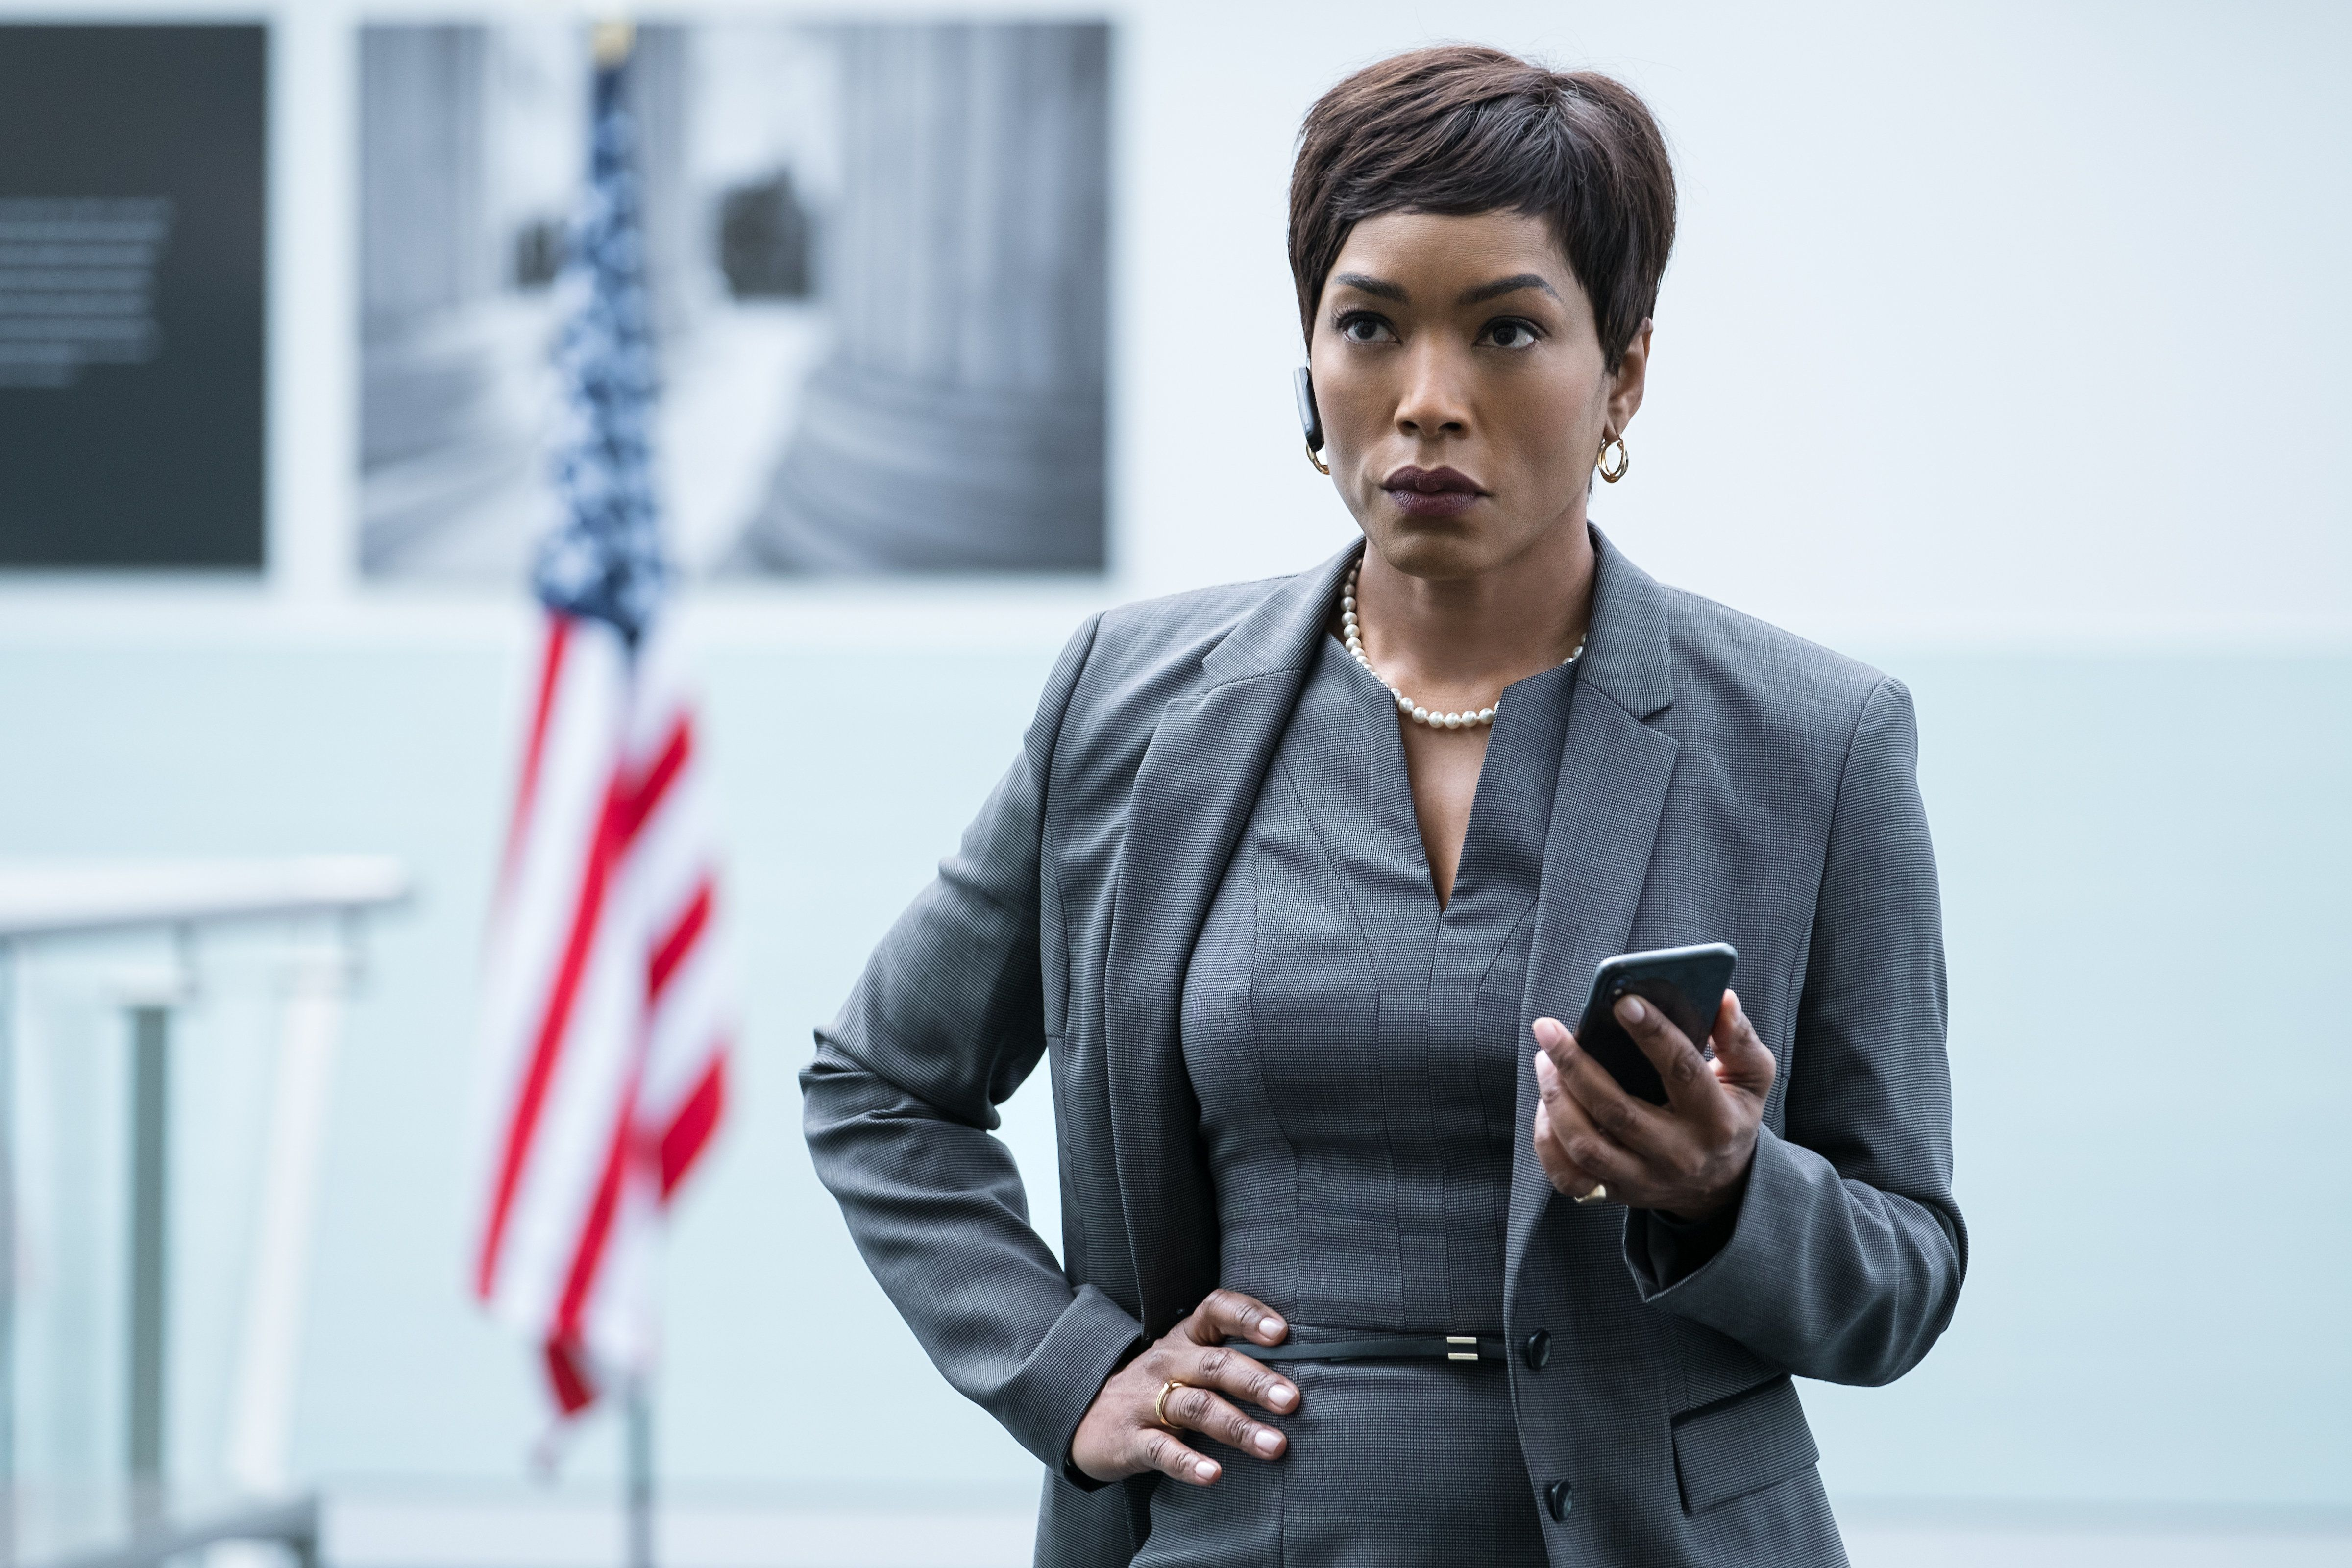 An Ode To Angela Bassett Saying 'Plutonium' In The New 'Mission: